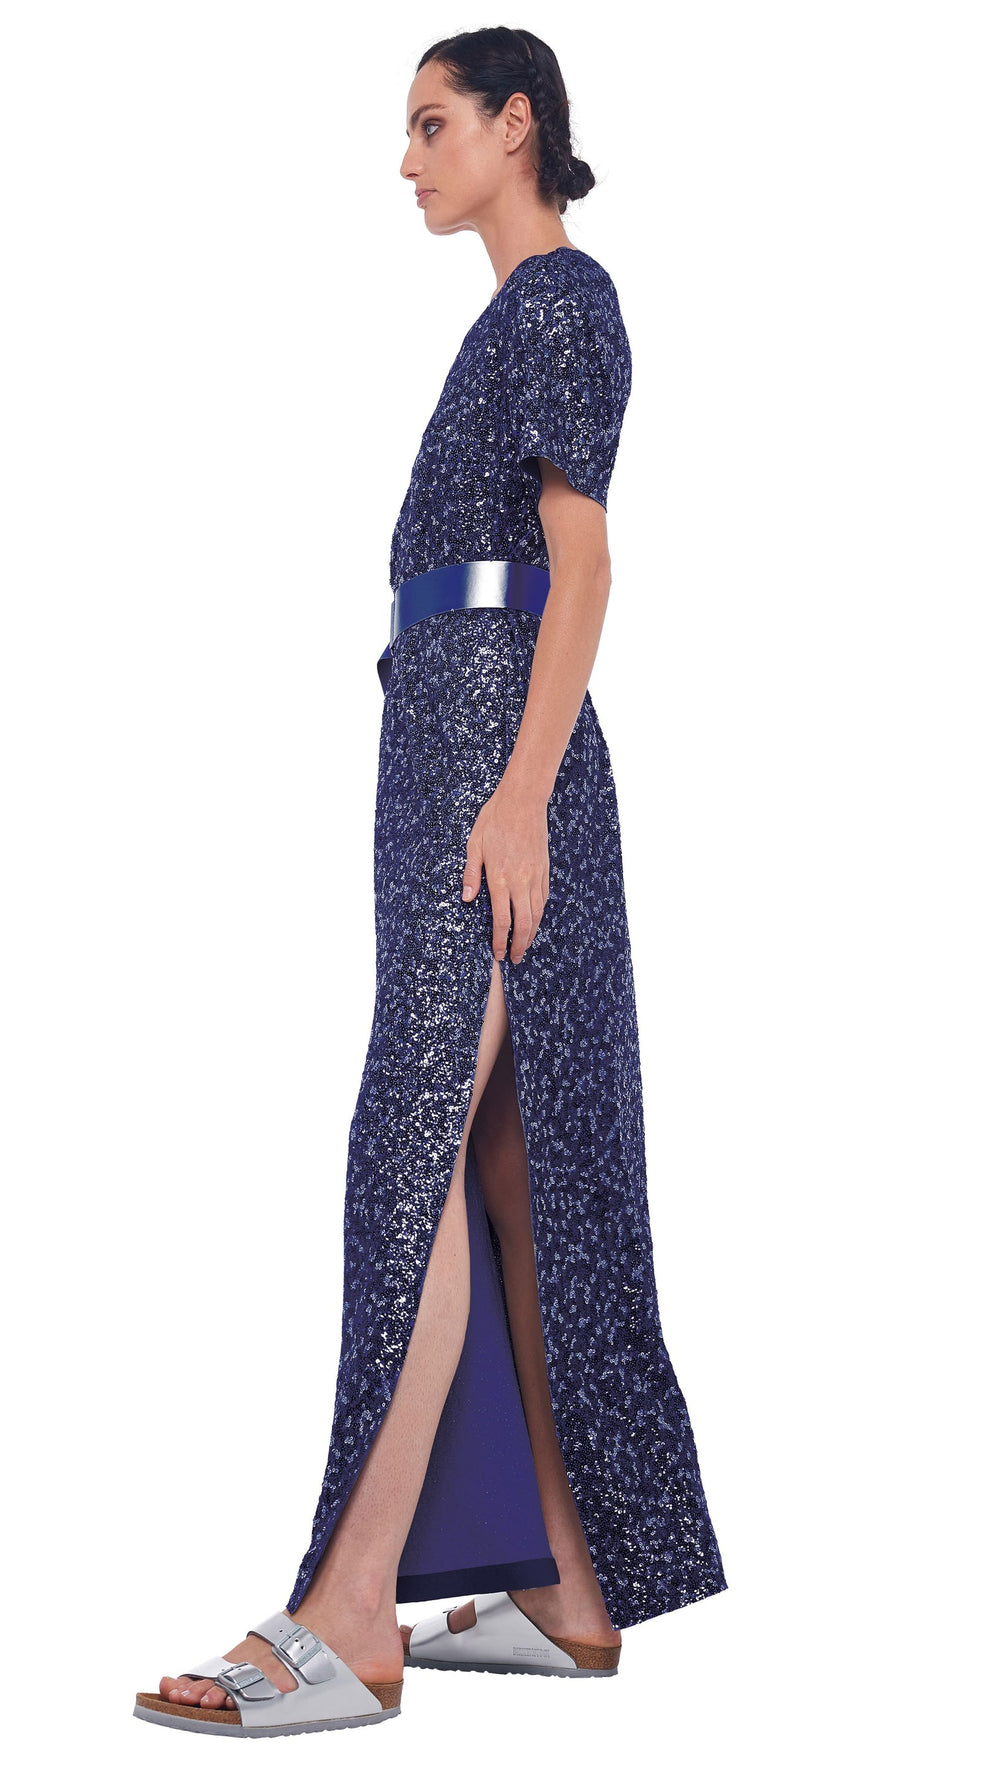 OVERLAPPING SEQUIN SHORT SLEEVES BOXY GOWN WITH SIDE SLIT